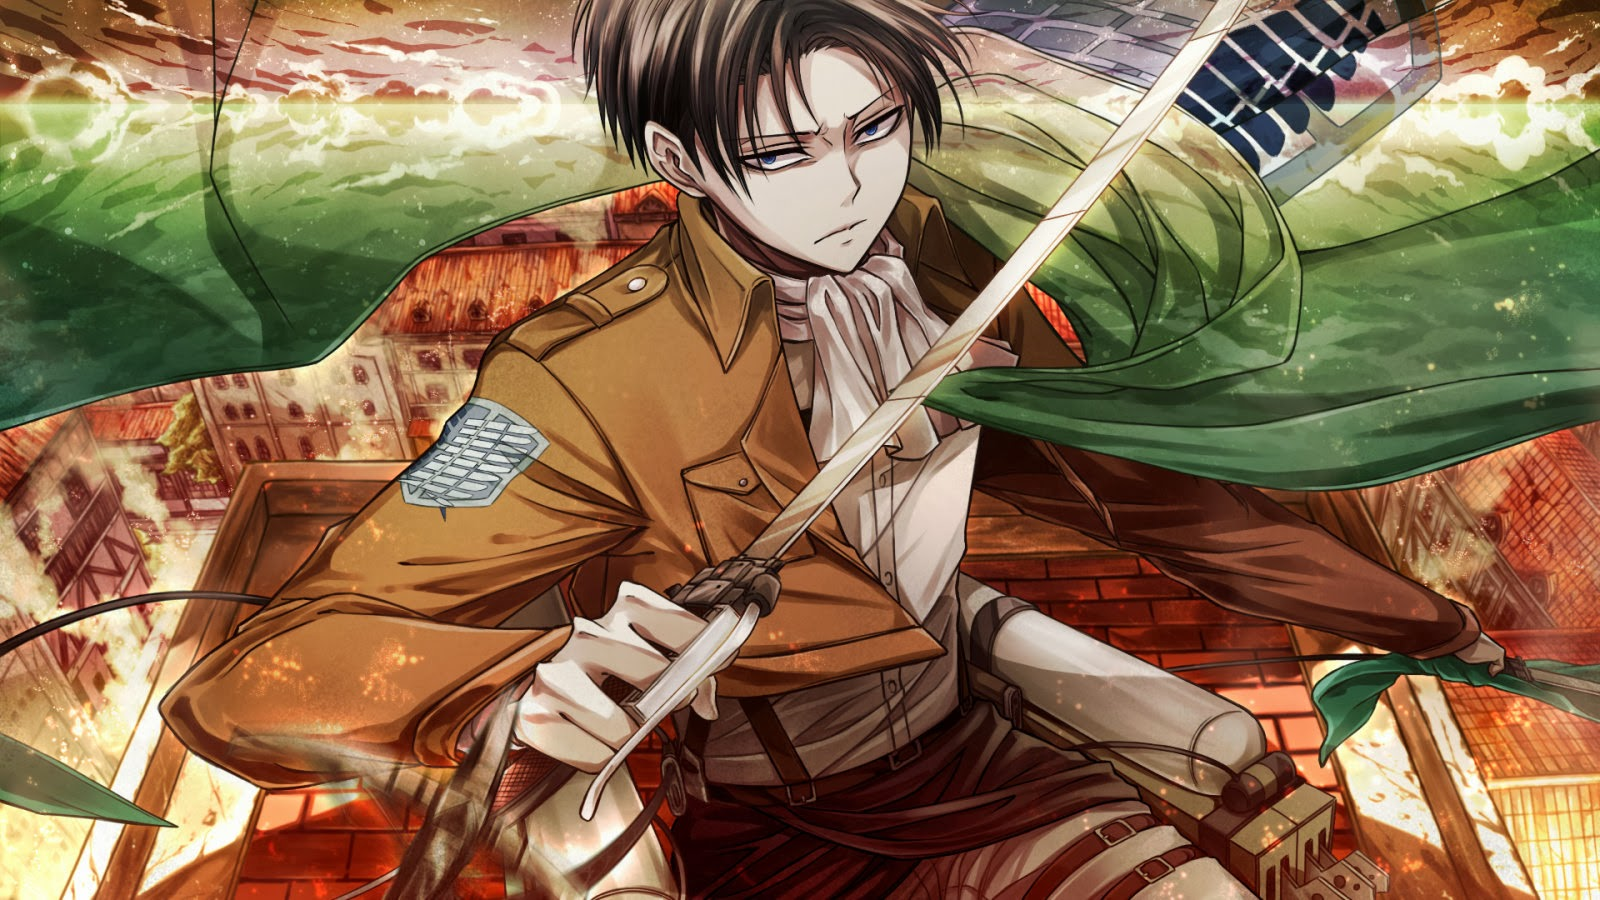 Levi Cape Survey Corps b07 HD Wallpaper 1600x900